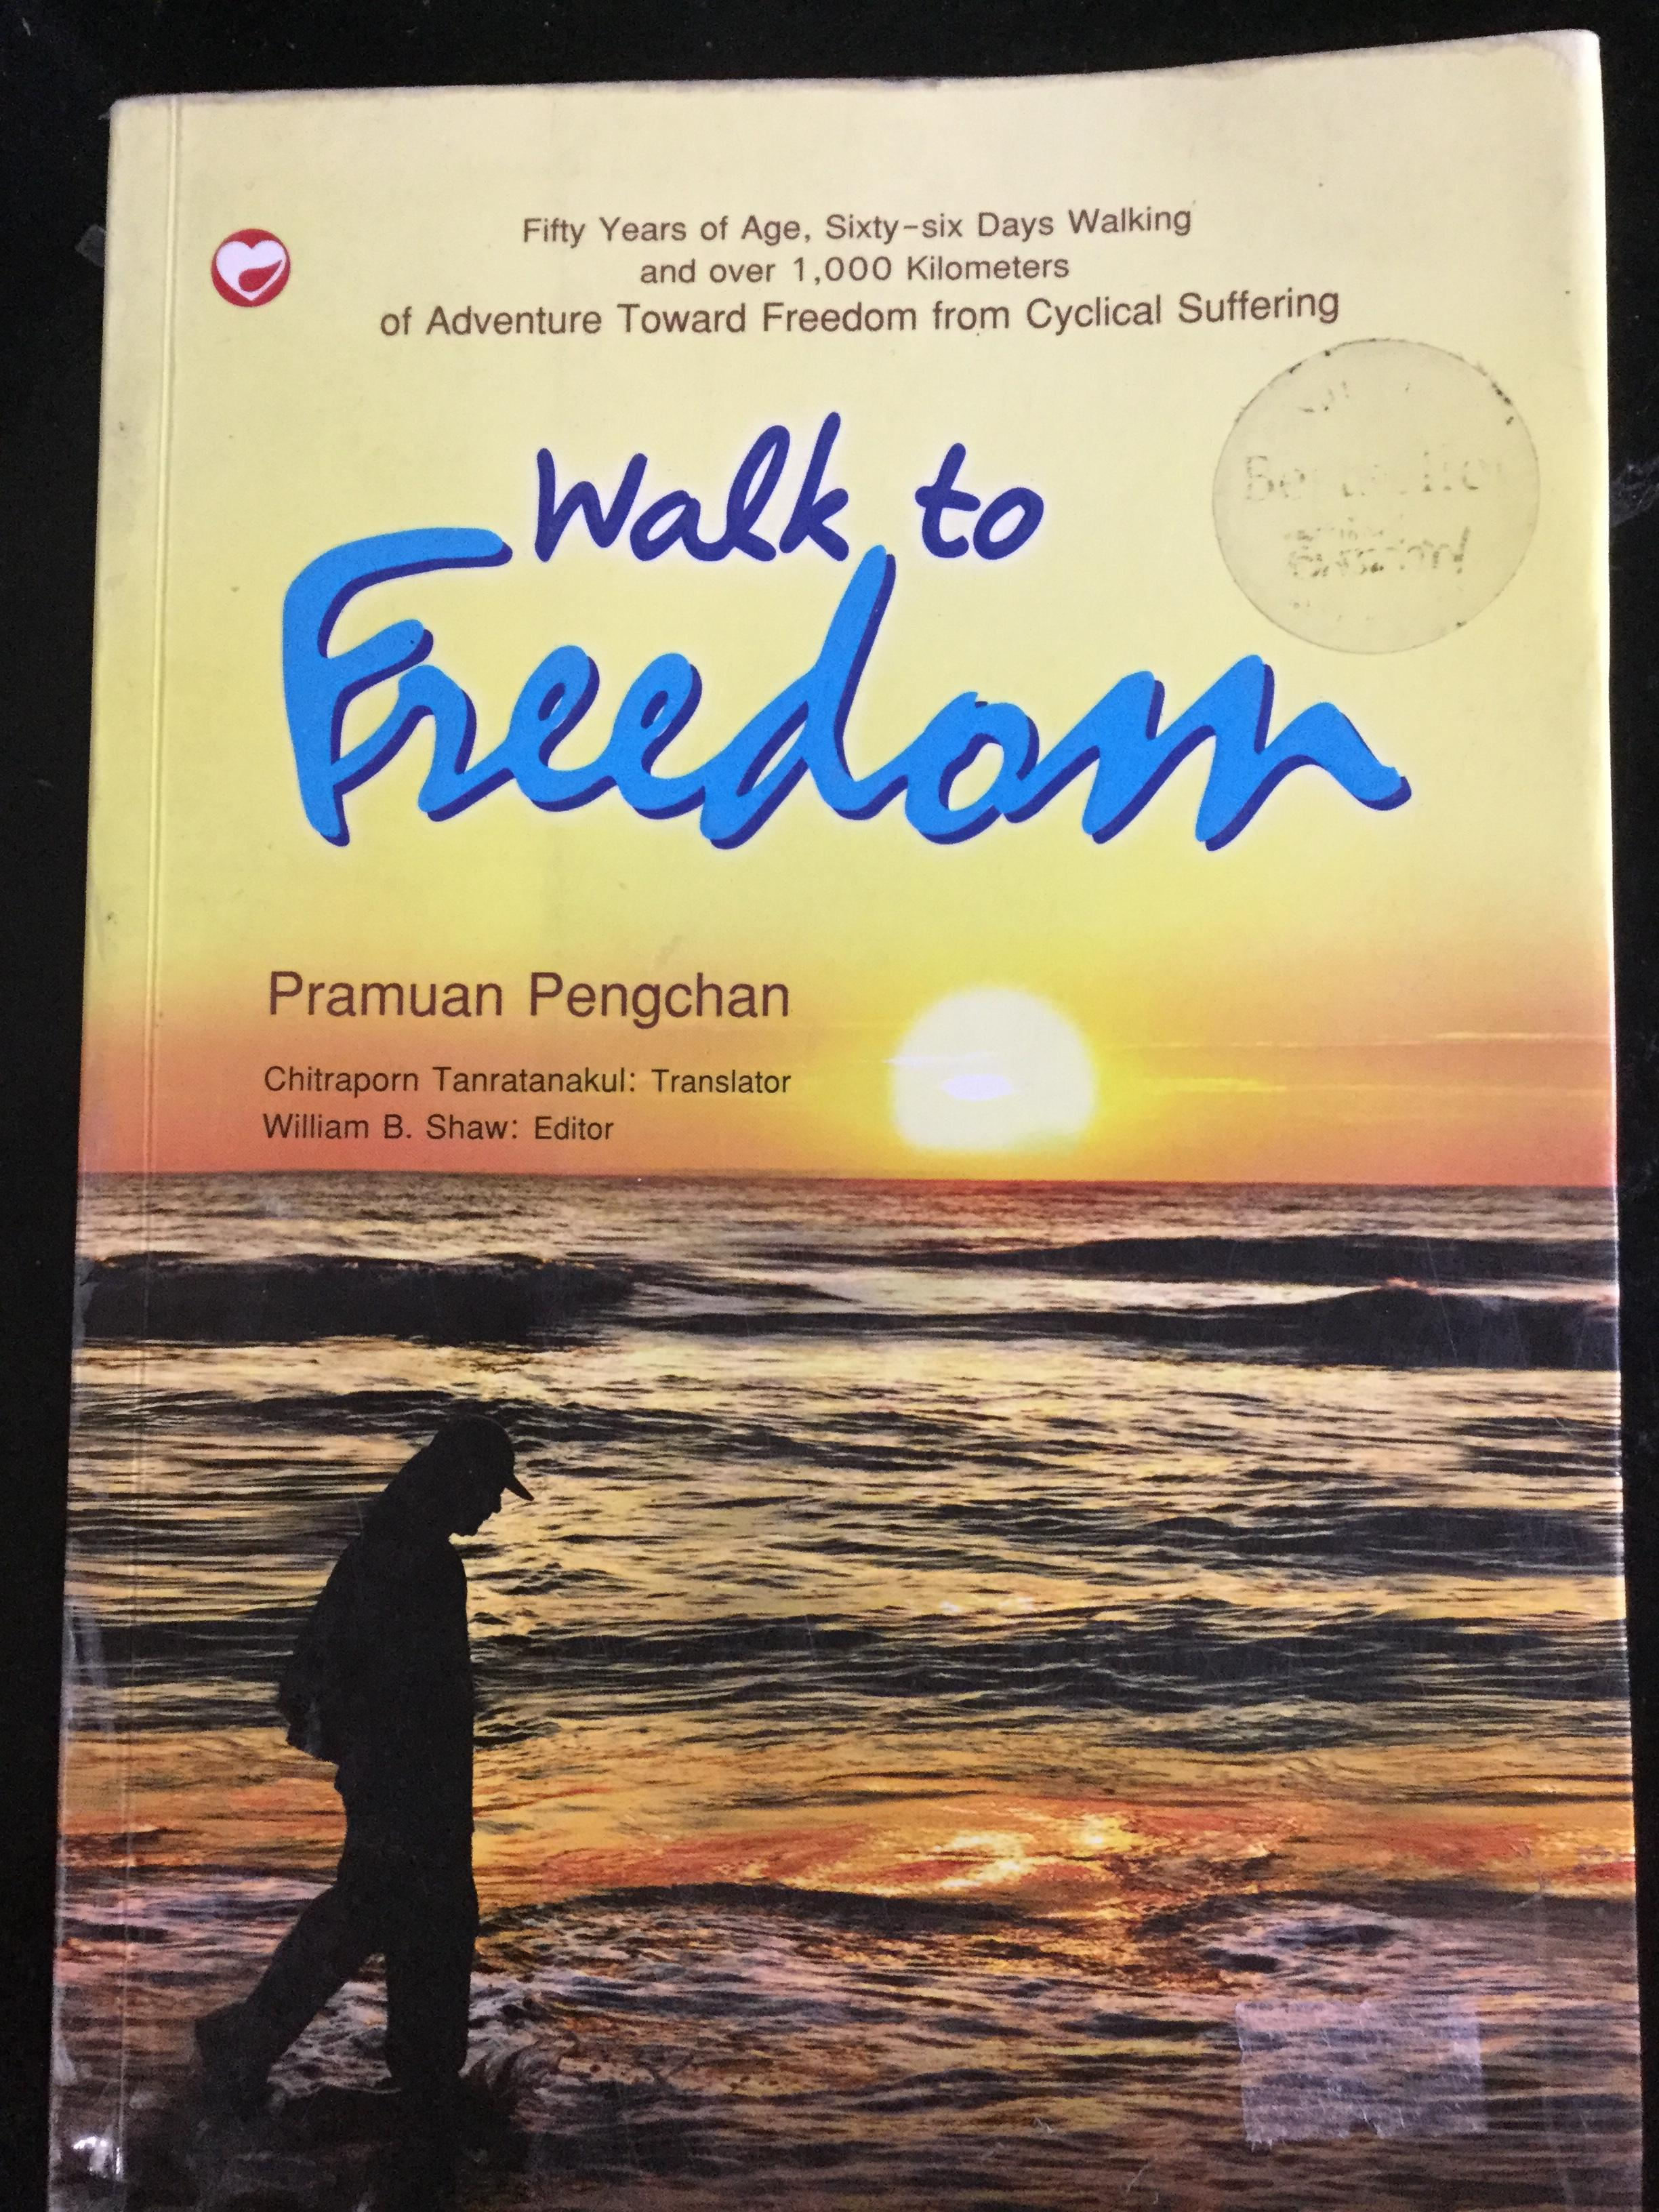 Walk to Freedom Fifty Years of Age,Sixty-Six Days Walking and over 1,000 kilometers of Adventure Toward Freedom from Cyclical Suffering ผู้เขียน ประมวล เพ็งจันทร์